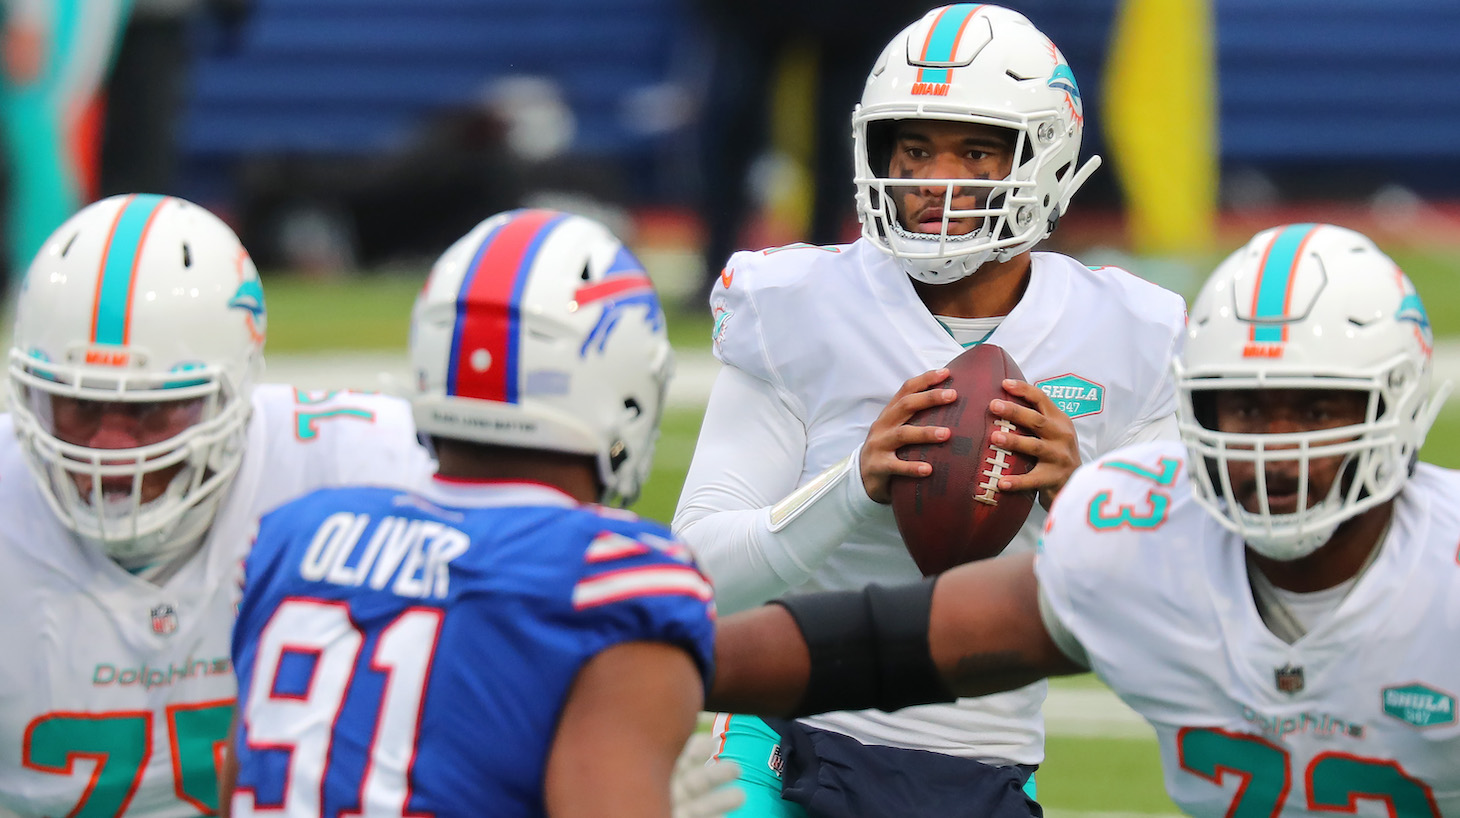 ORCHARD PARK, NEW YORK - JANUARY 03: Tua Tagovailoa #1 of the Miami Dolphins looks to pass against the Buffalo Bills during the first quarter at Bills Stadium on January 03, 2021 in Orchard Park, New York. (Photo by Timothy T Ludwig/Getty Images)